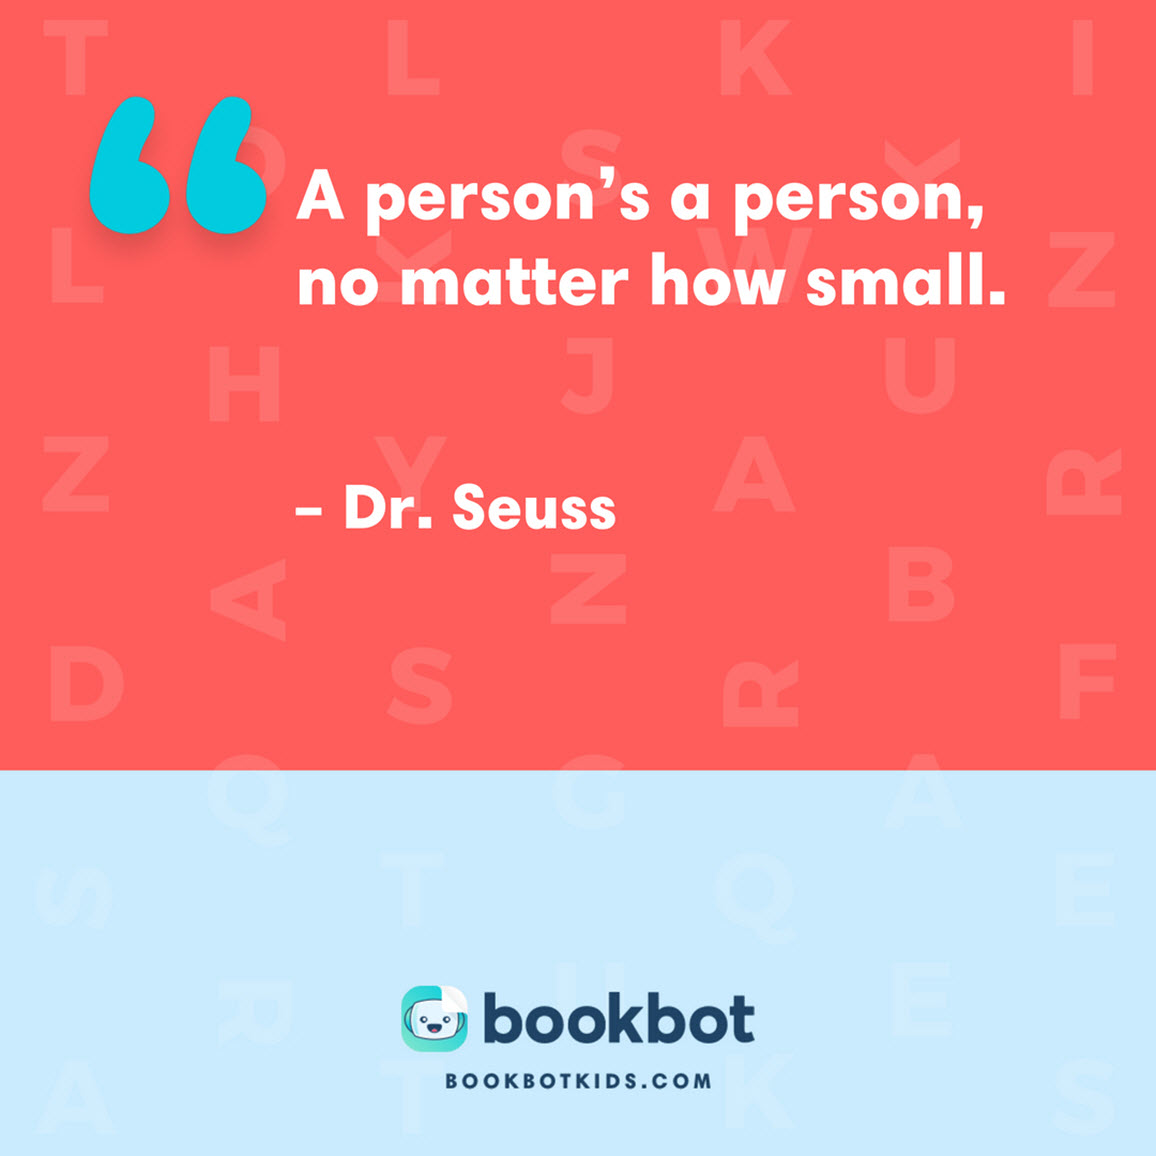 A person's a person, no matter how small. – Dr. Seuss